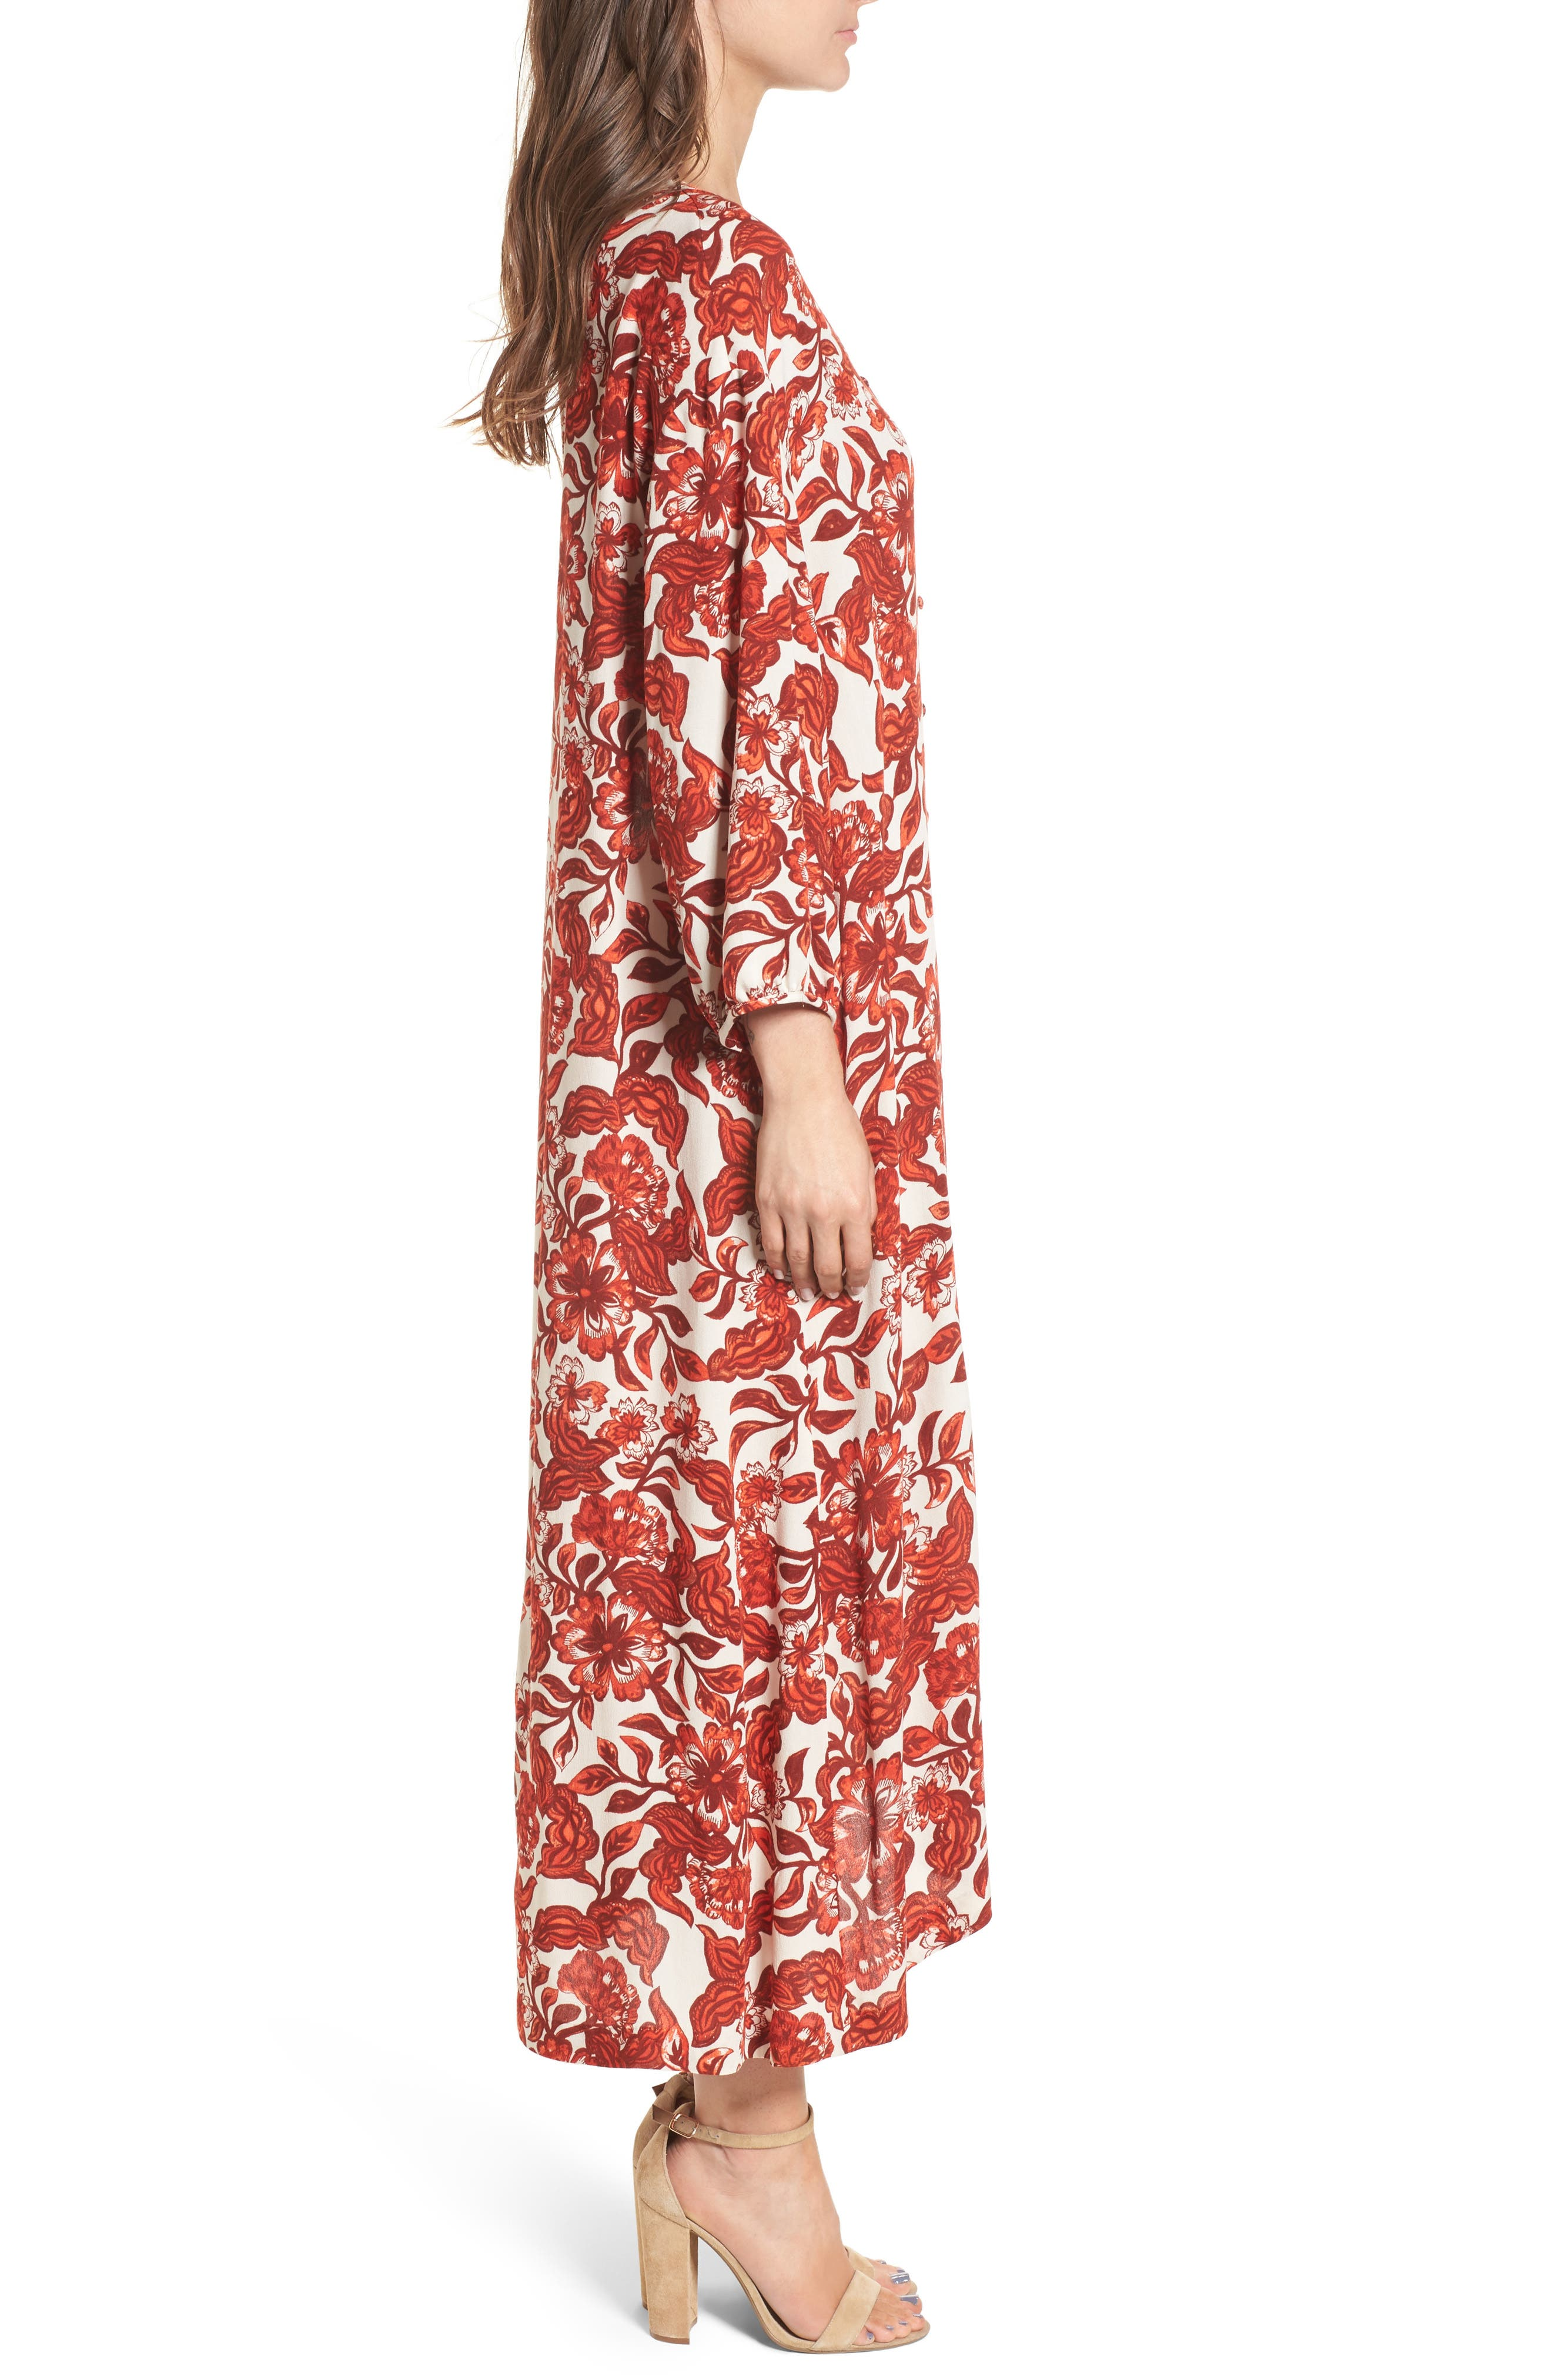 Floral Print Maxi Dress,                             Alternate thumbnail 3, color,                             Red Lava Snap Floral